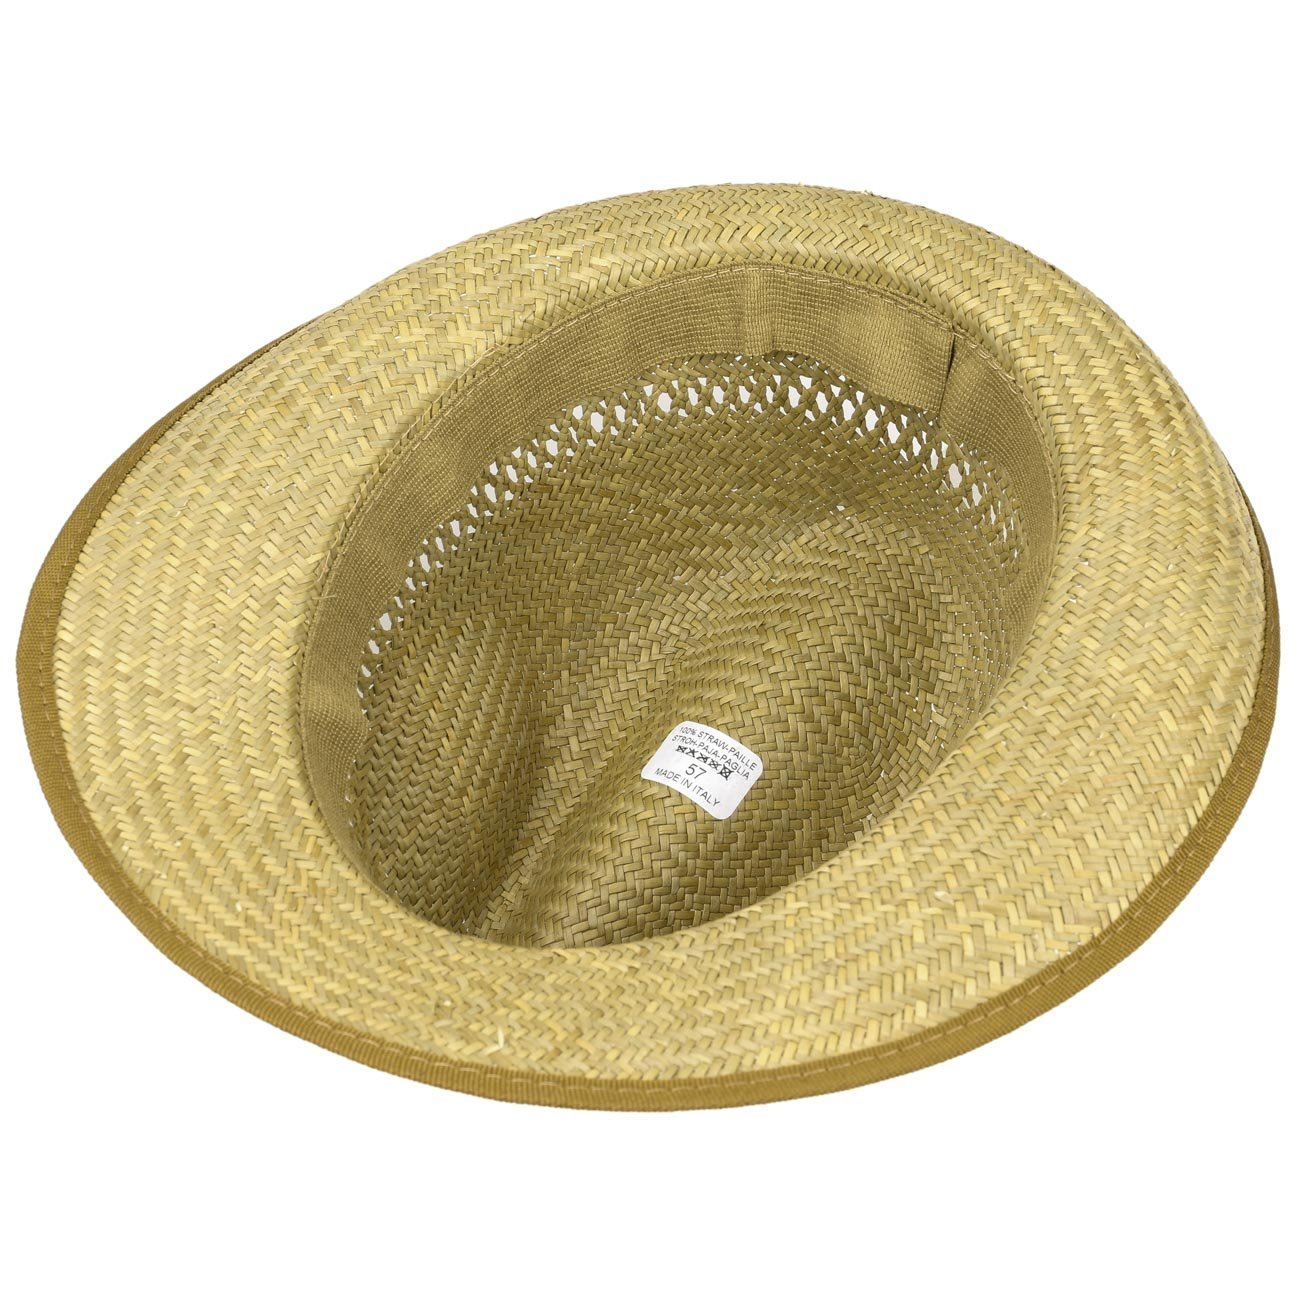 Lightweight Straw Hat with Grosgrain Ribbon Natural Colour Airy Hat Thanks to The Interwoven Air Holes for Women and Men Summer Hat with Wide Brim in Sizes 54-63 cm Classic Straw Fedora Hat